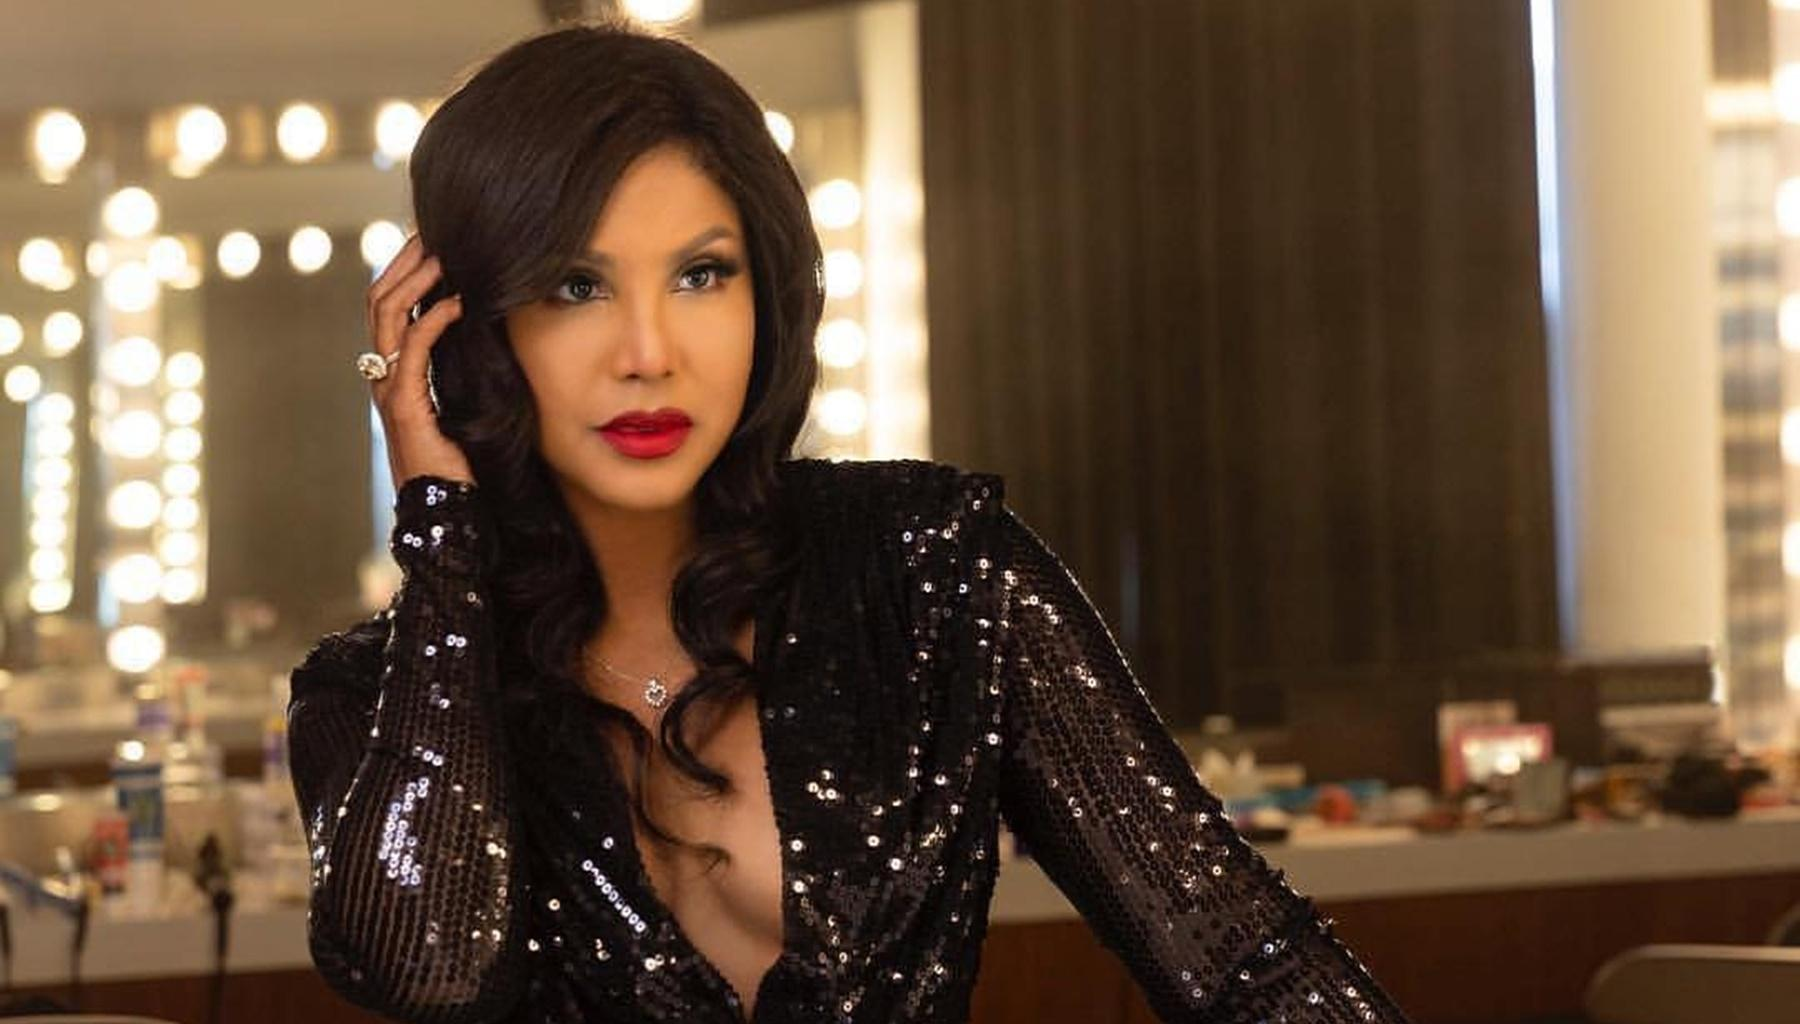 Toni Braxton Shares Jaw-Dropping Photos From A Concert - Tamar Braxton Praises Her Sister